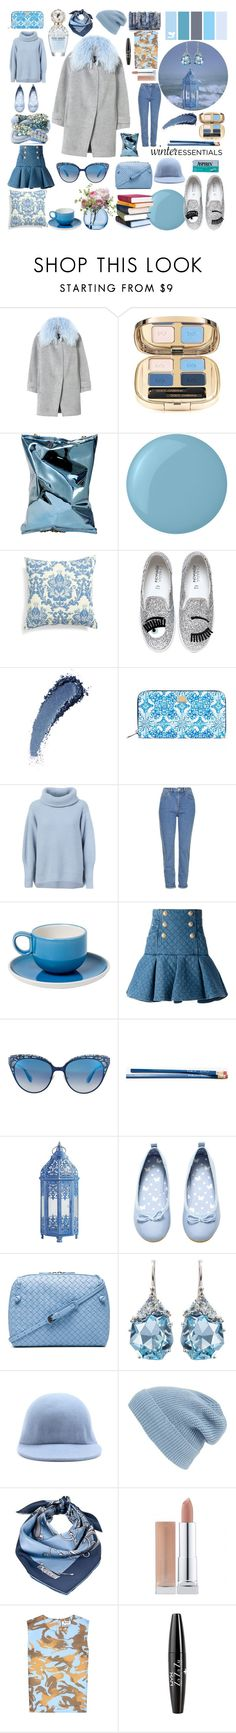 """the little I need"" by hbee-1234 ❤ liked on Polyvore featuring Rebecca Taylor, Dolce&Gabbana, Anya Hindmarch, Essie, Amity Home, Chiara Ferragni, Marc Jacobs, Maison Ullens, Topshop and MANGO"